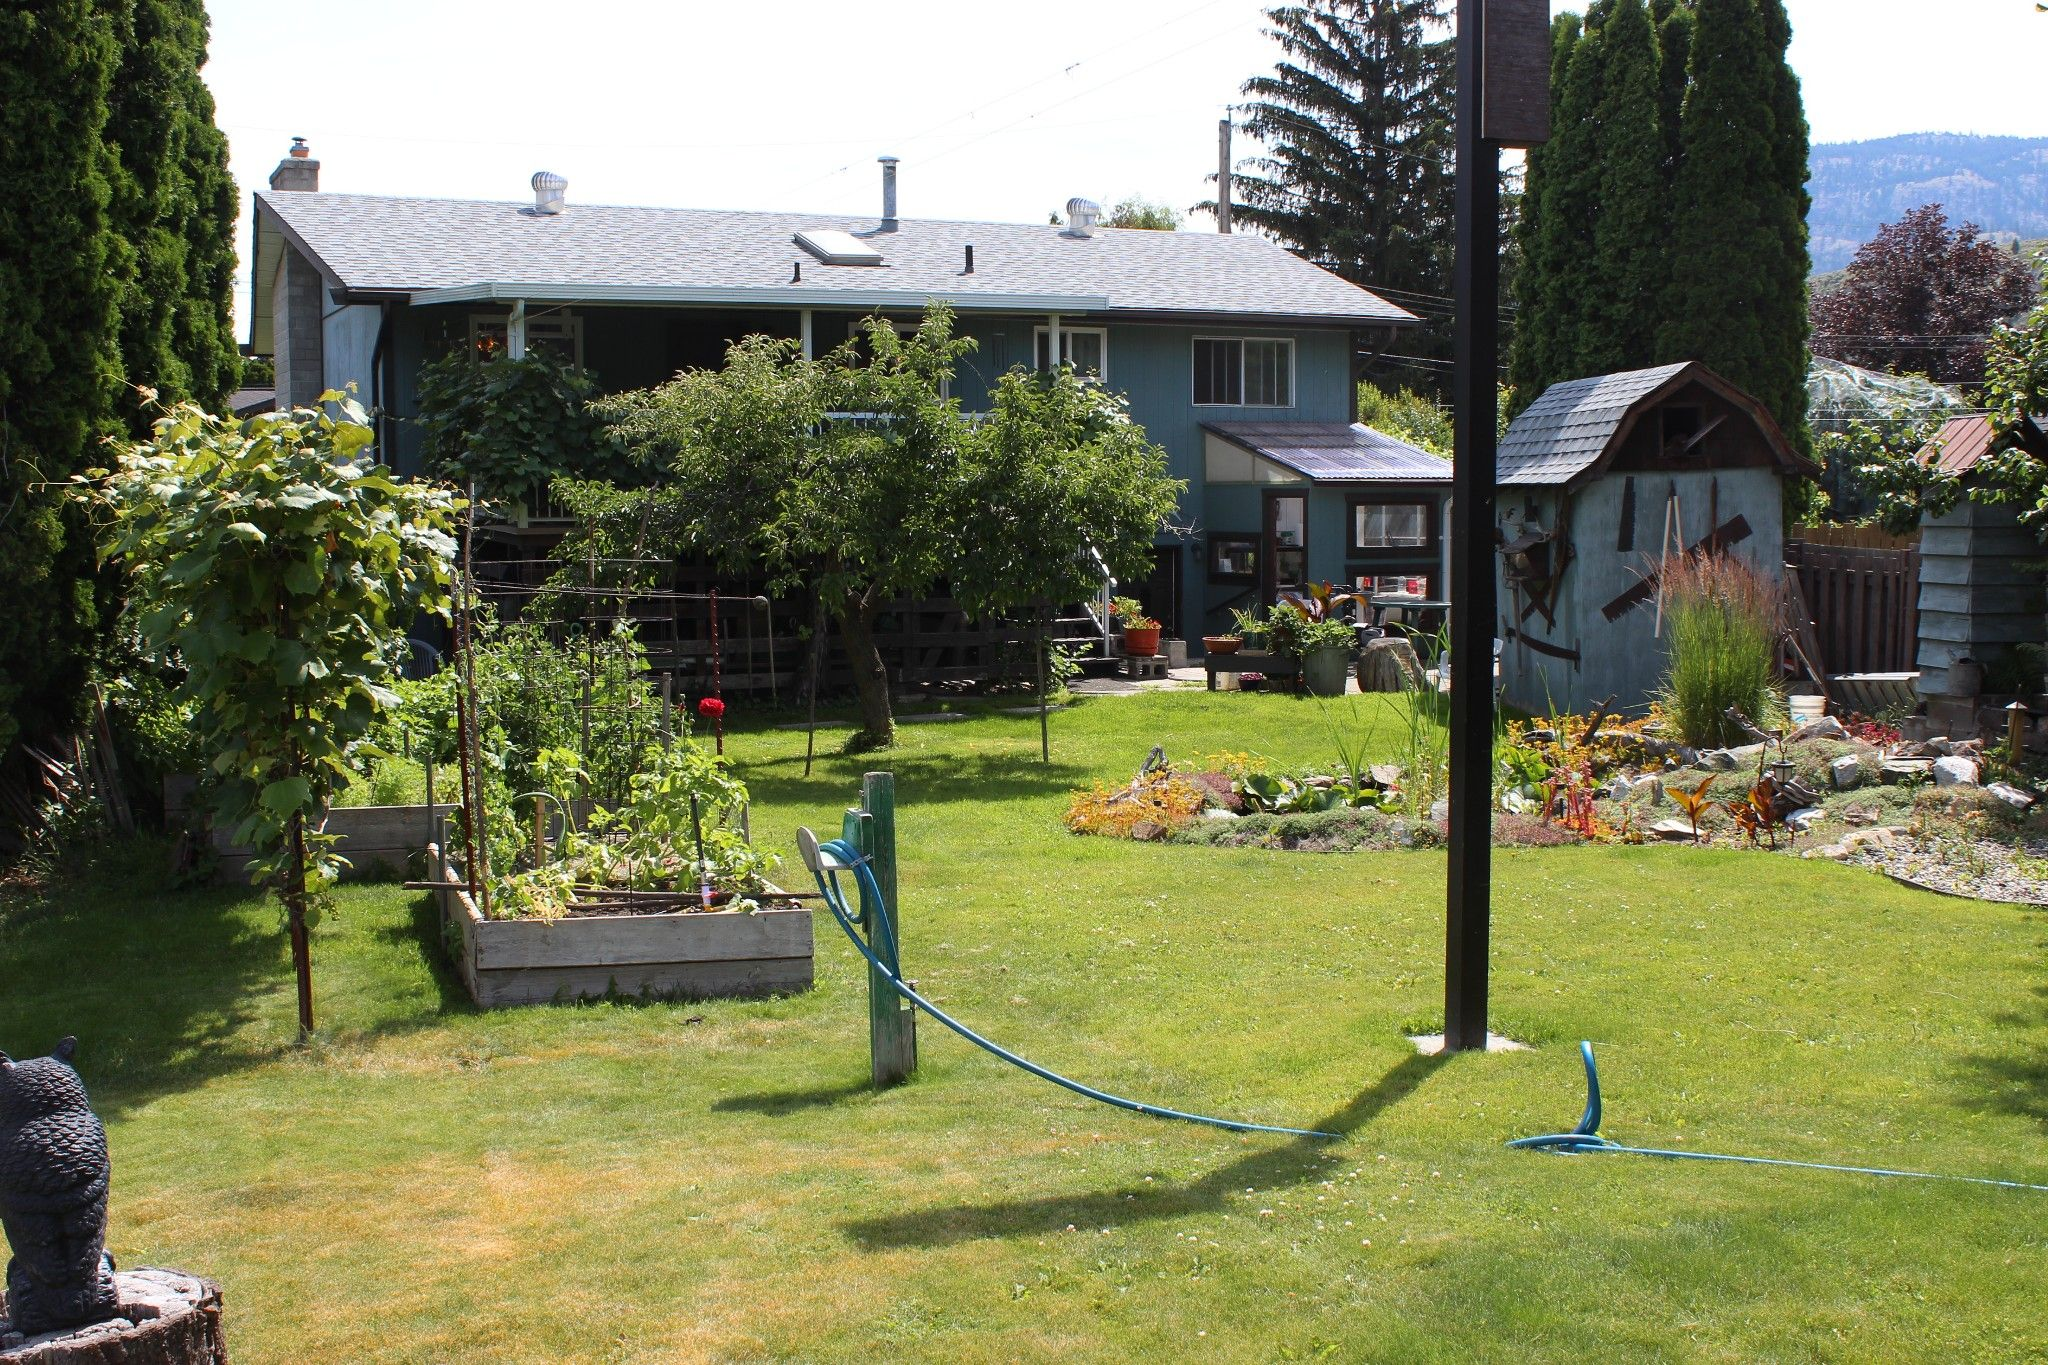 Photo 14: Photos: 98 Chapman Place in Kamloops: Valleyview House for sale : MLS®# 159545